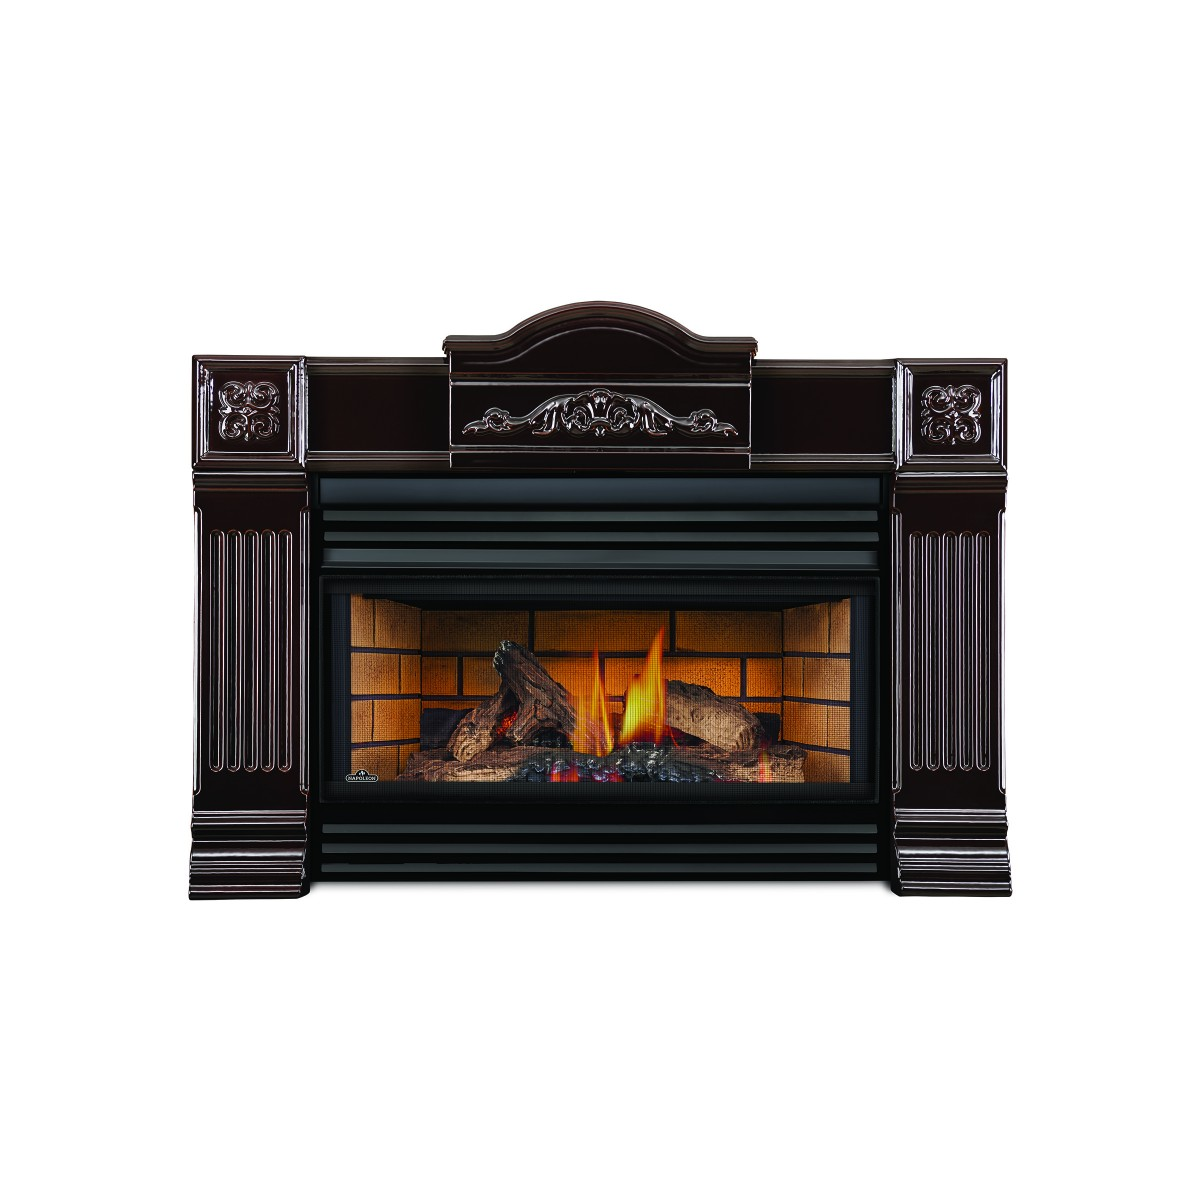 Napoleon Gi3600 4n Basic Natural Gas Fireplace Insert W